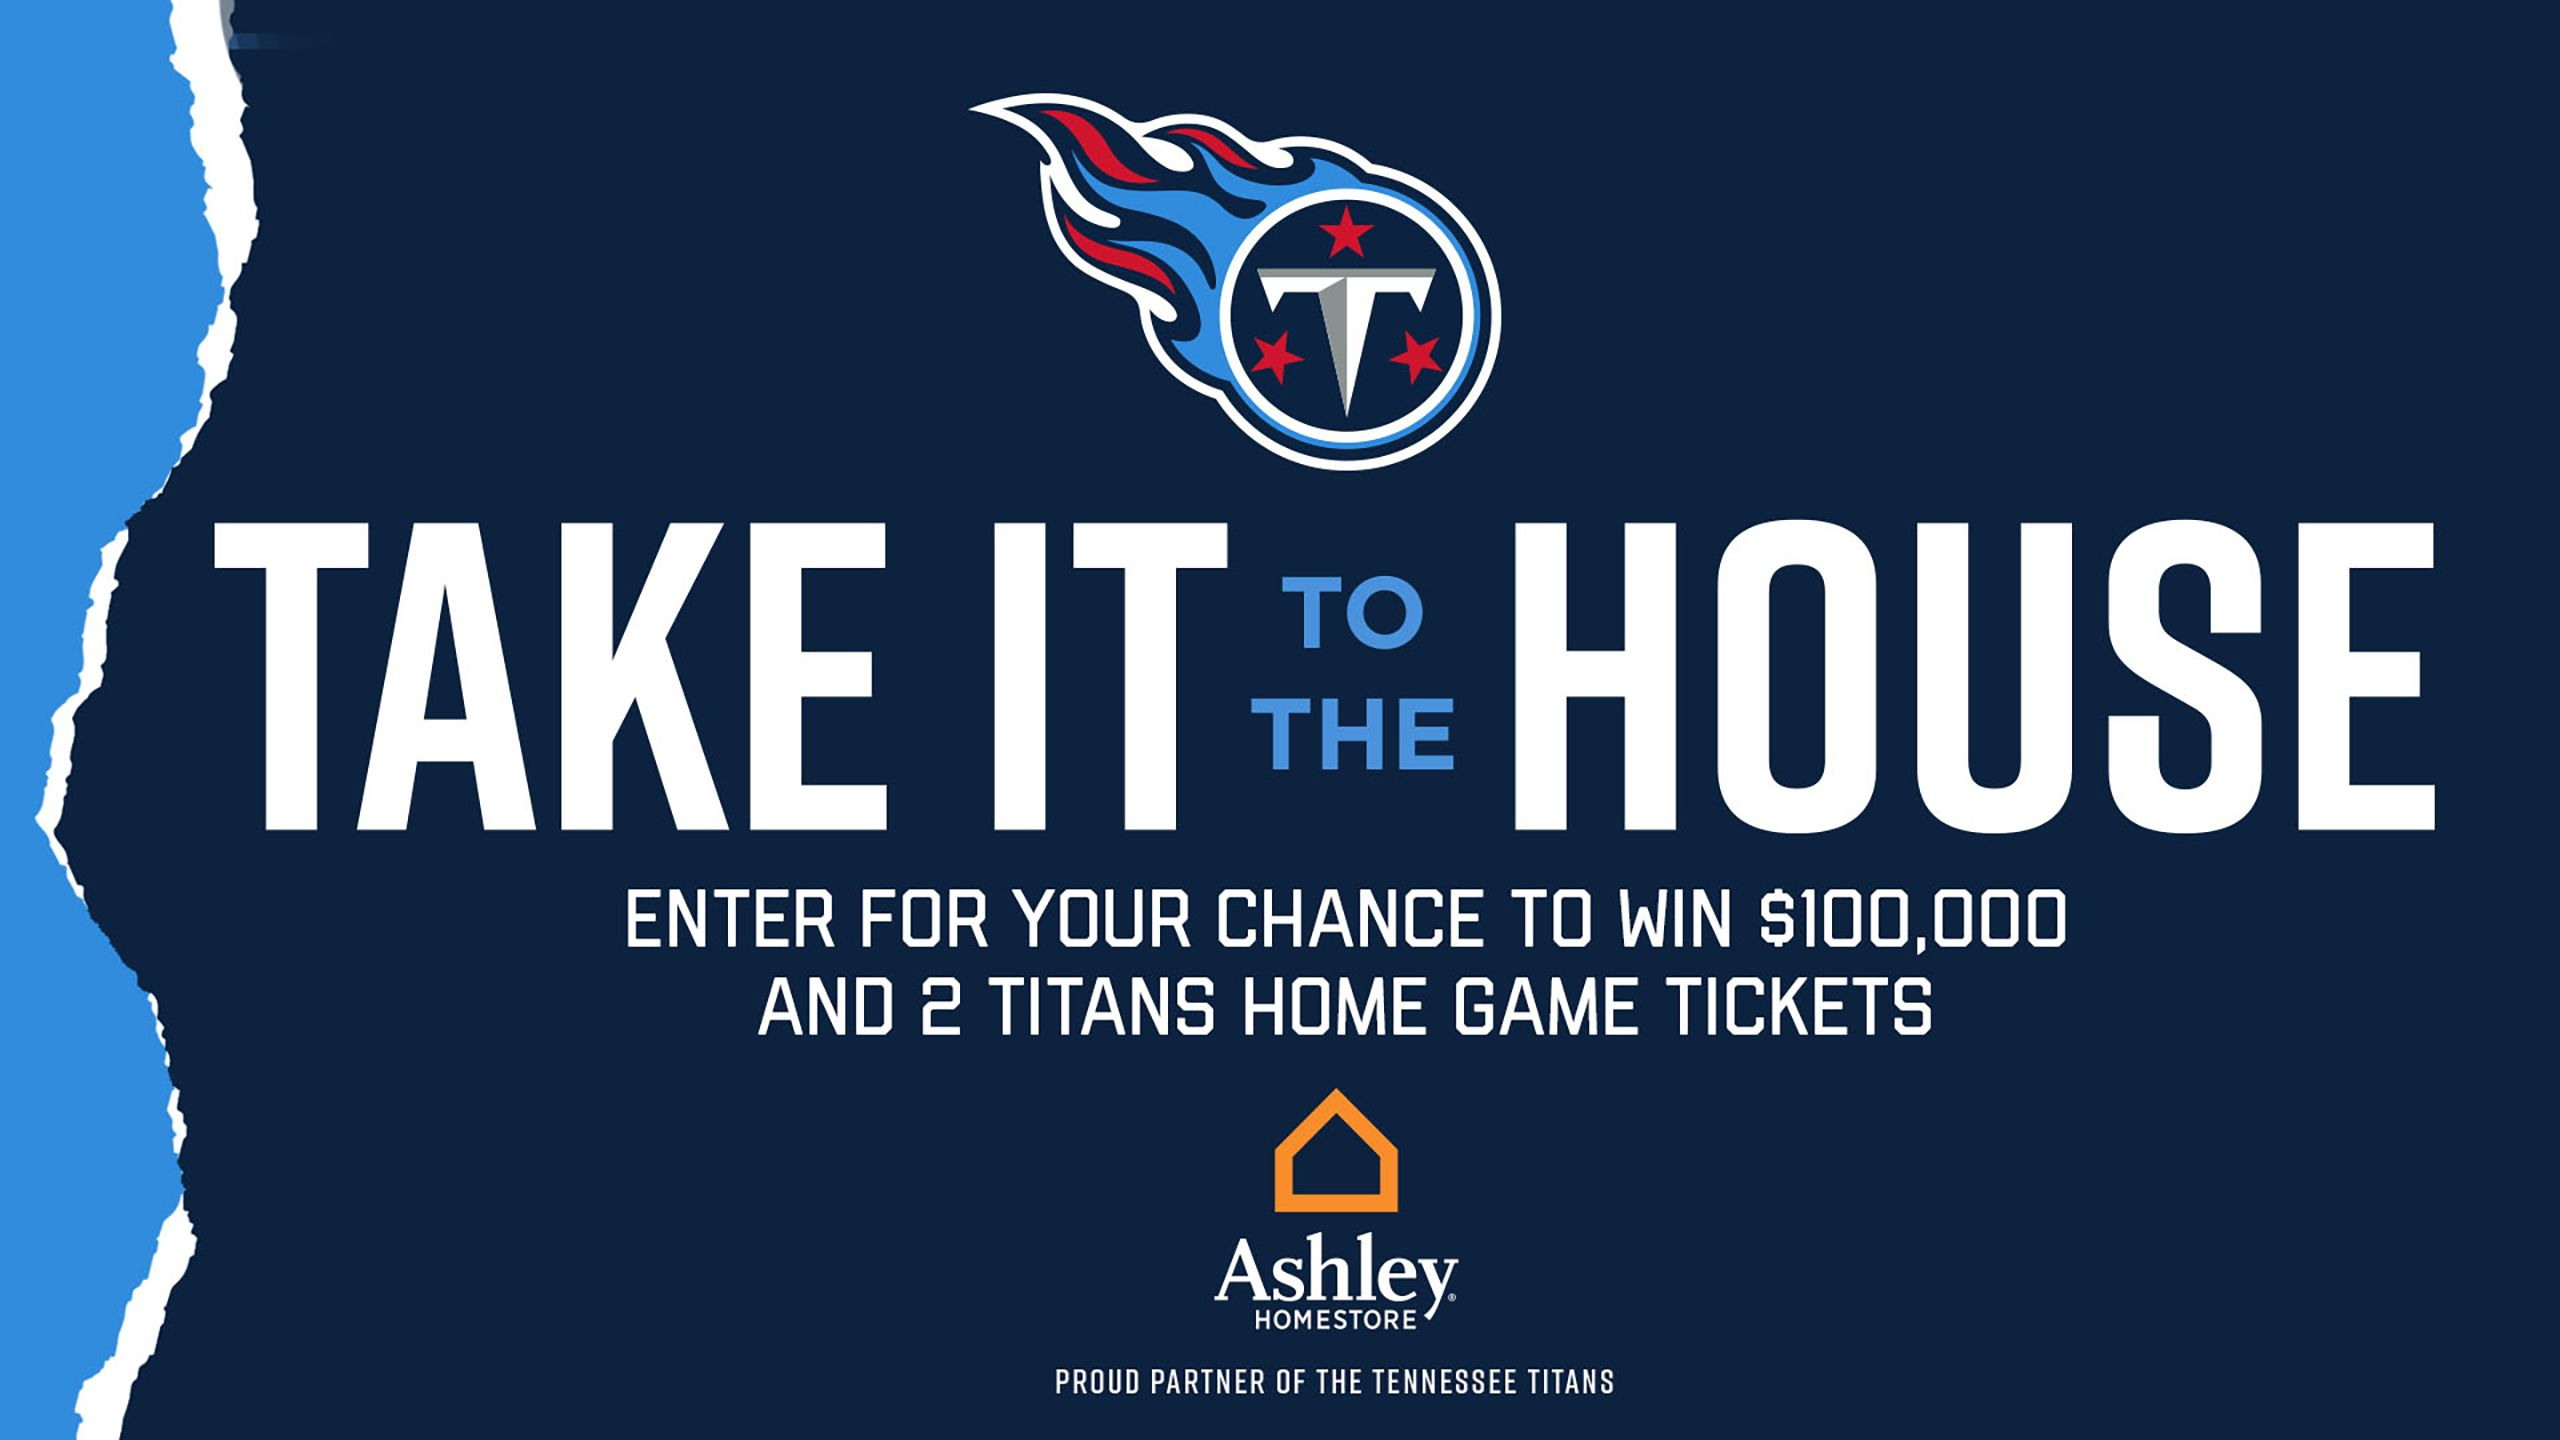 Take it to the House - Presented by Ashley HomeStore